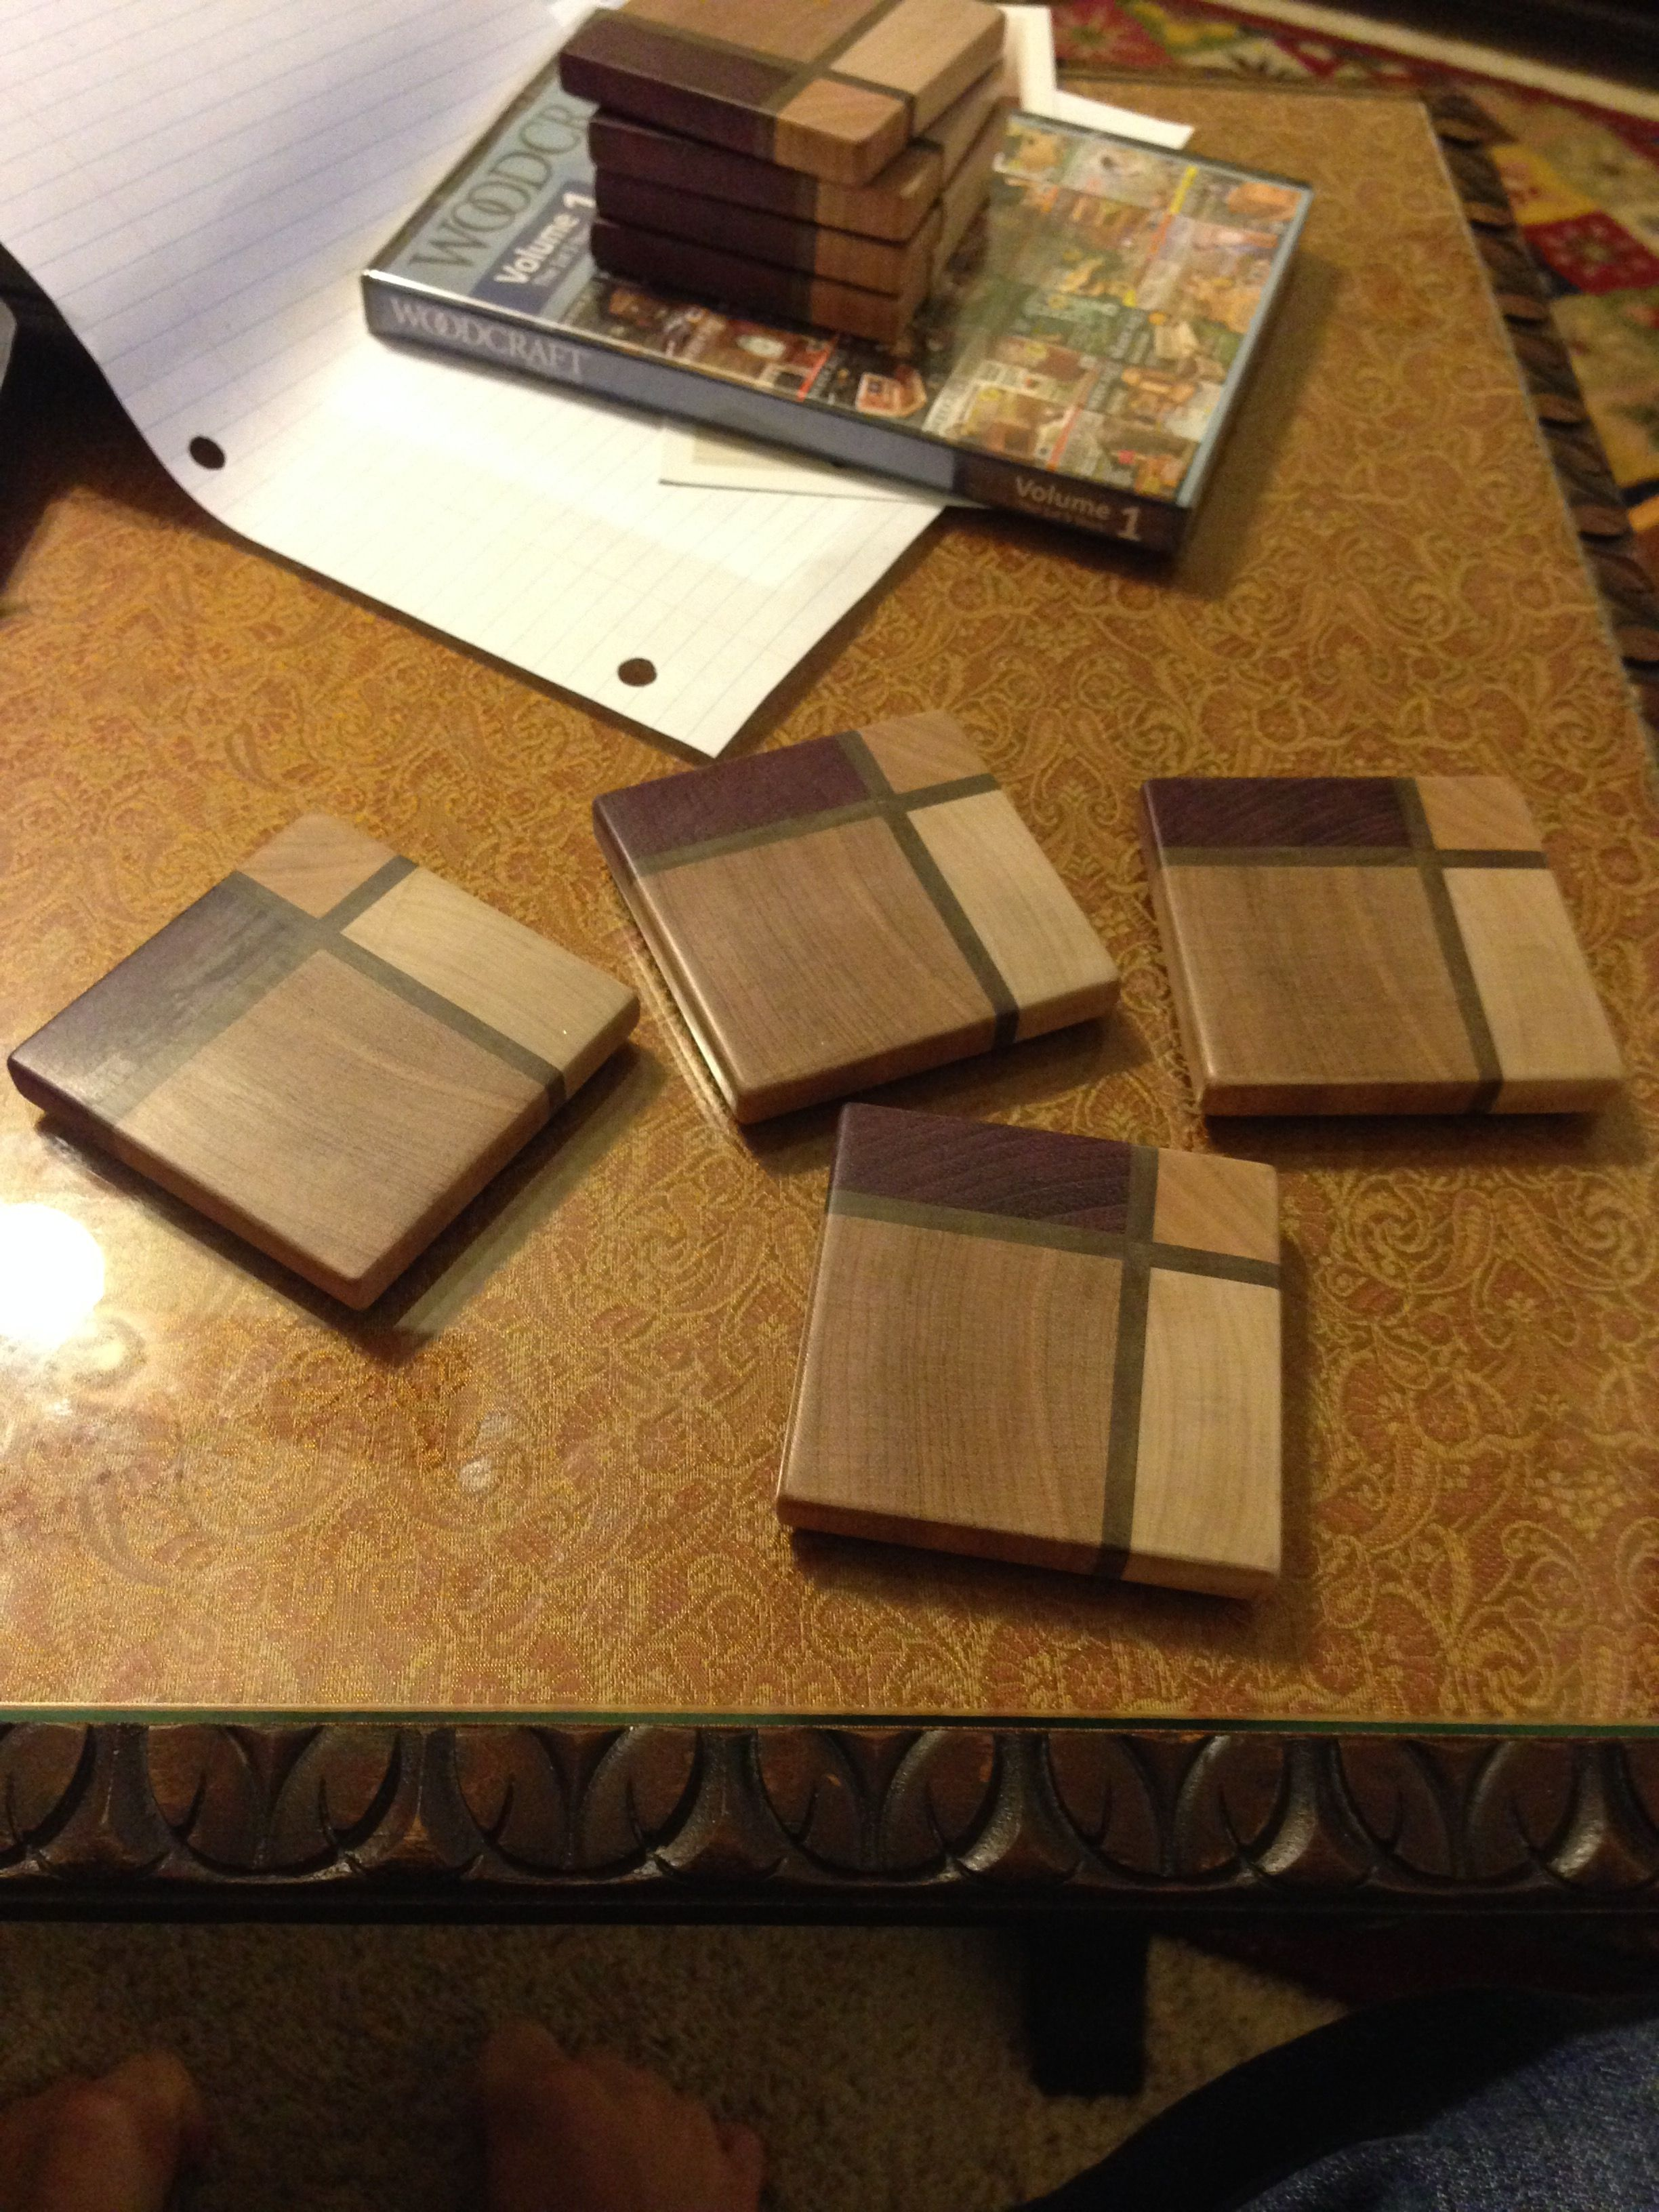 Guy Makes Coasters As A Quick Gift With Just Scrap Wood Laying